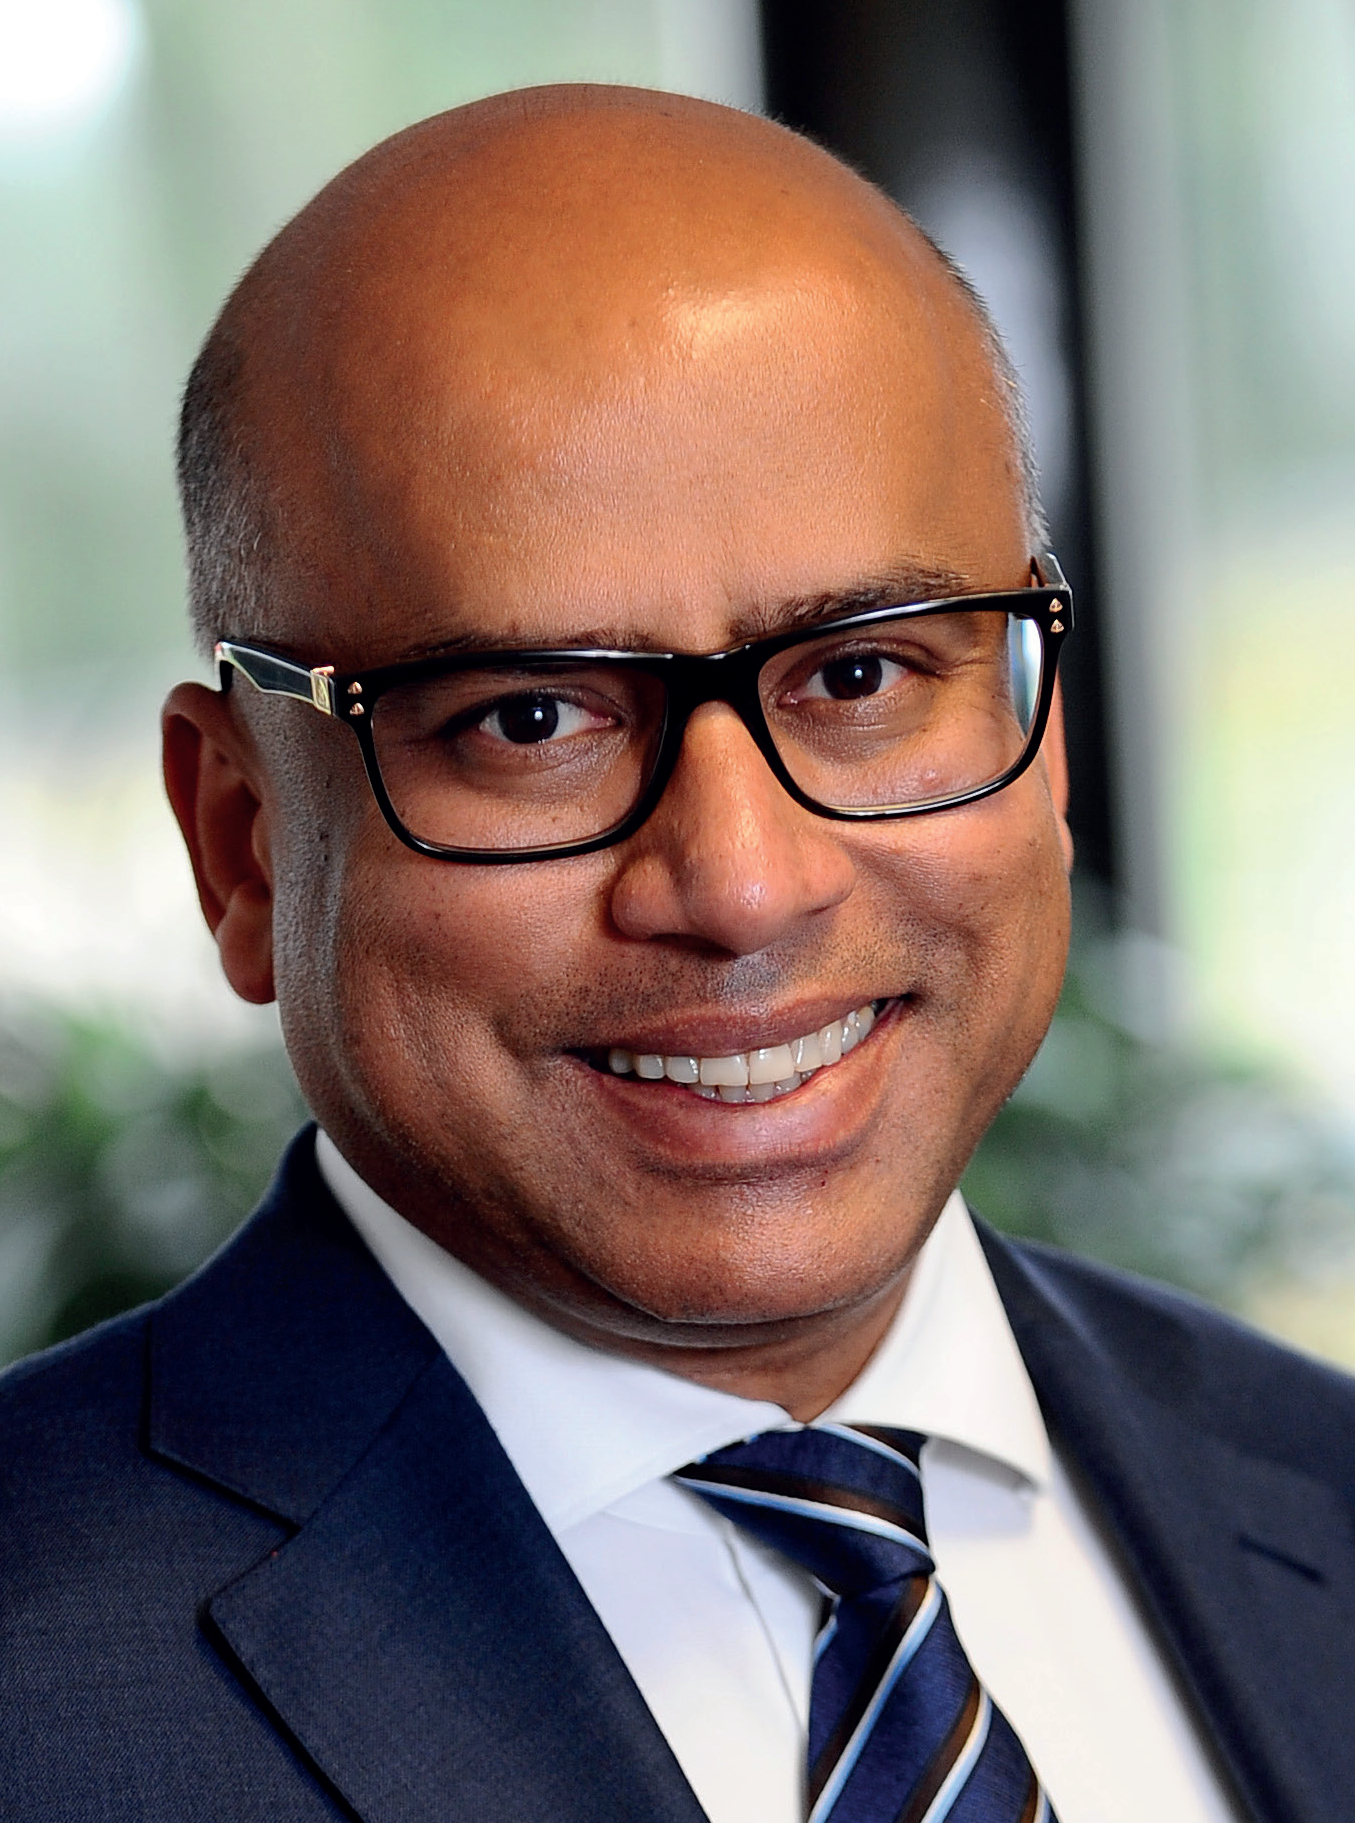 Sanjeev Gupta - The Manufacturer Front Cover - Feb 2019